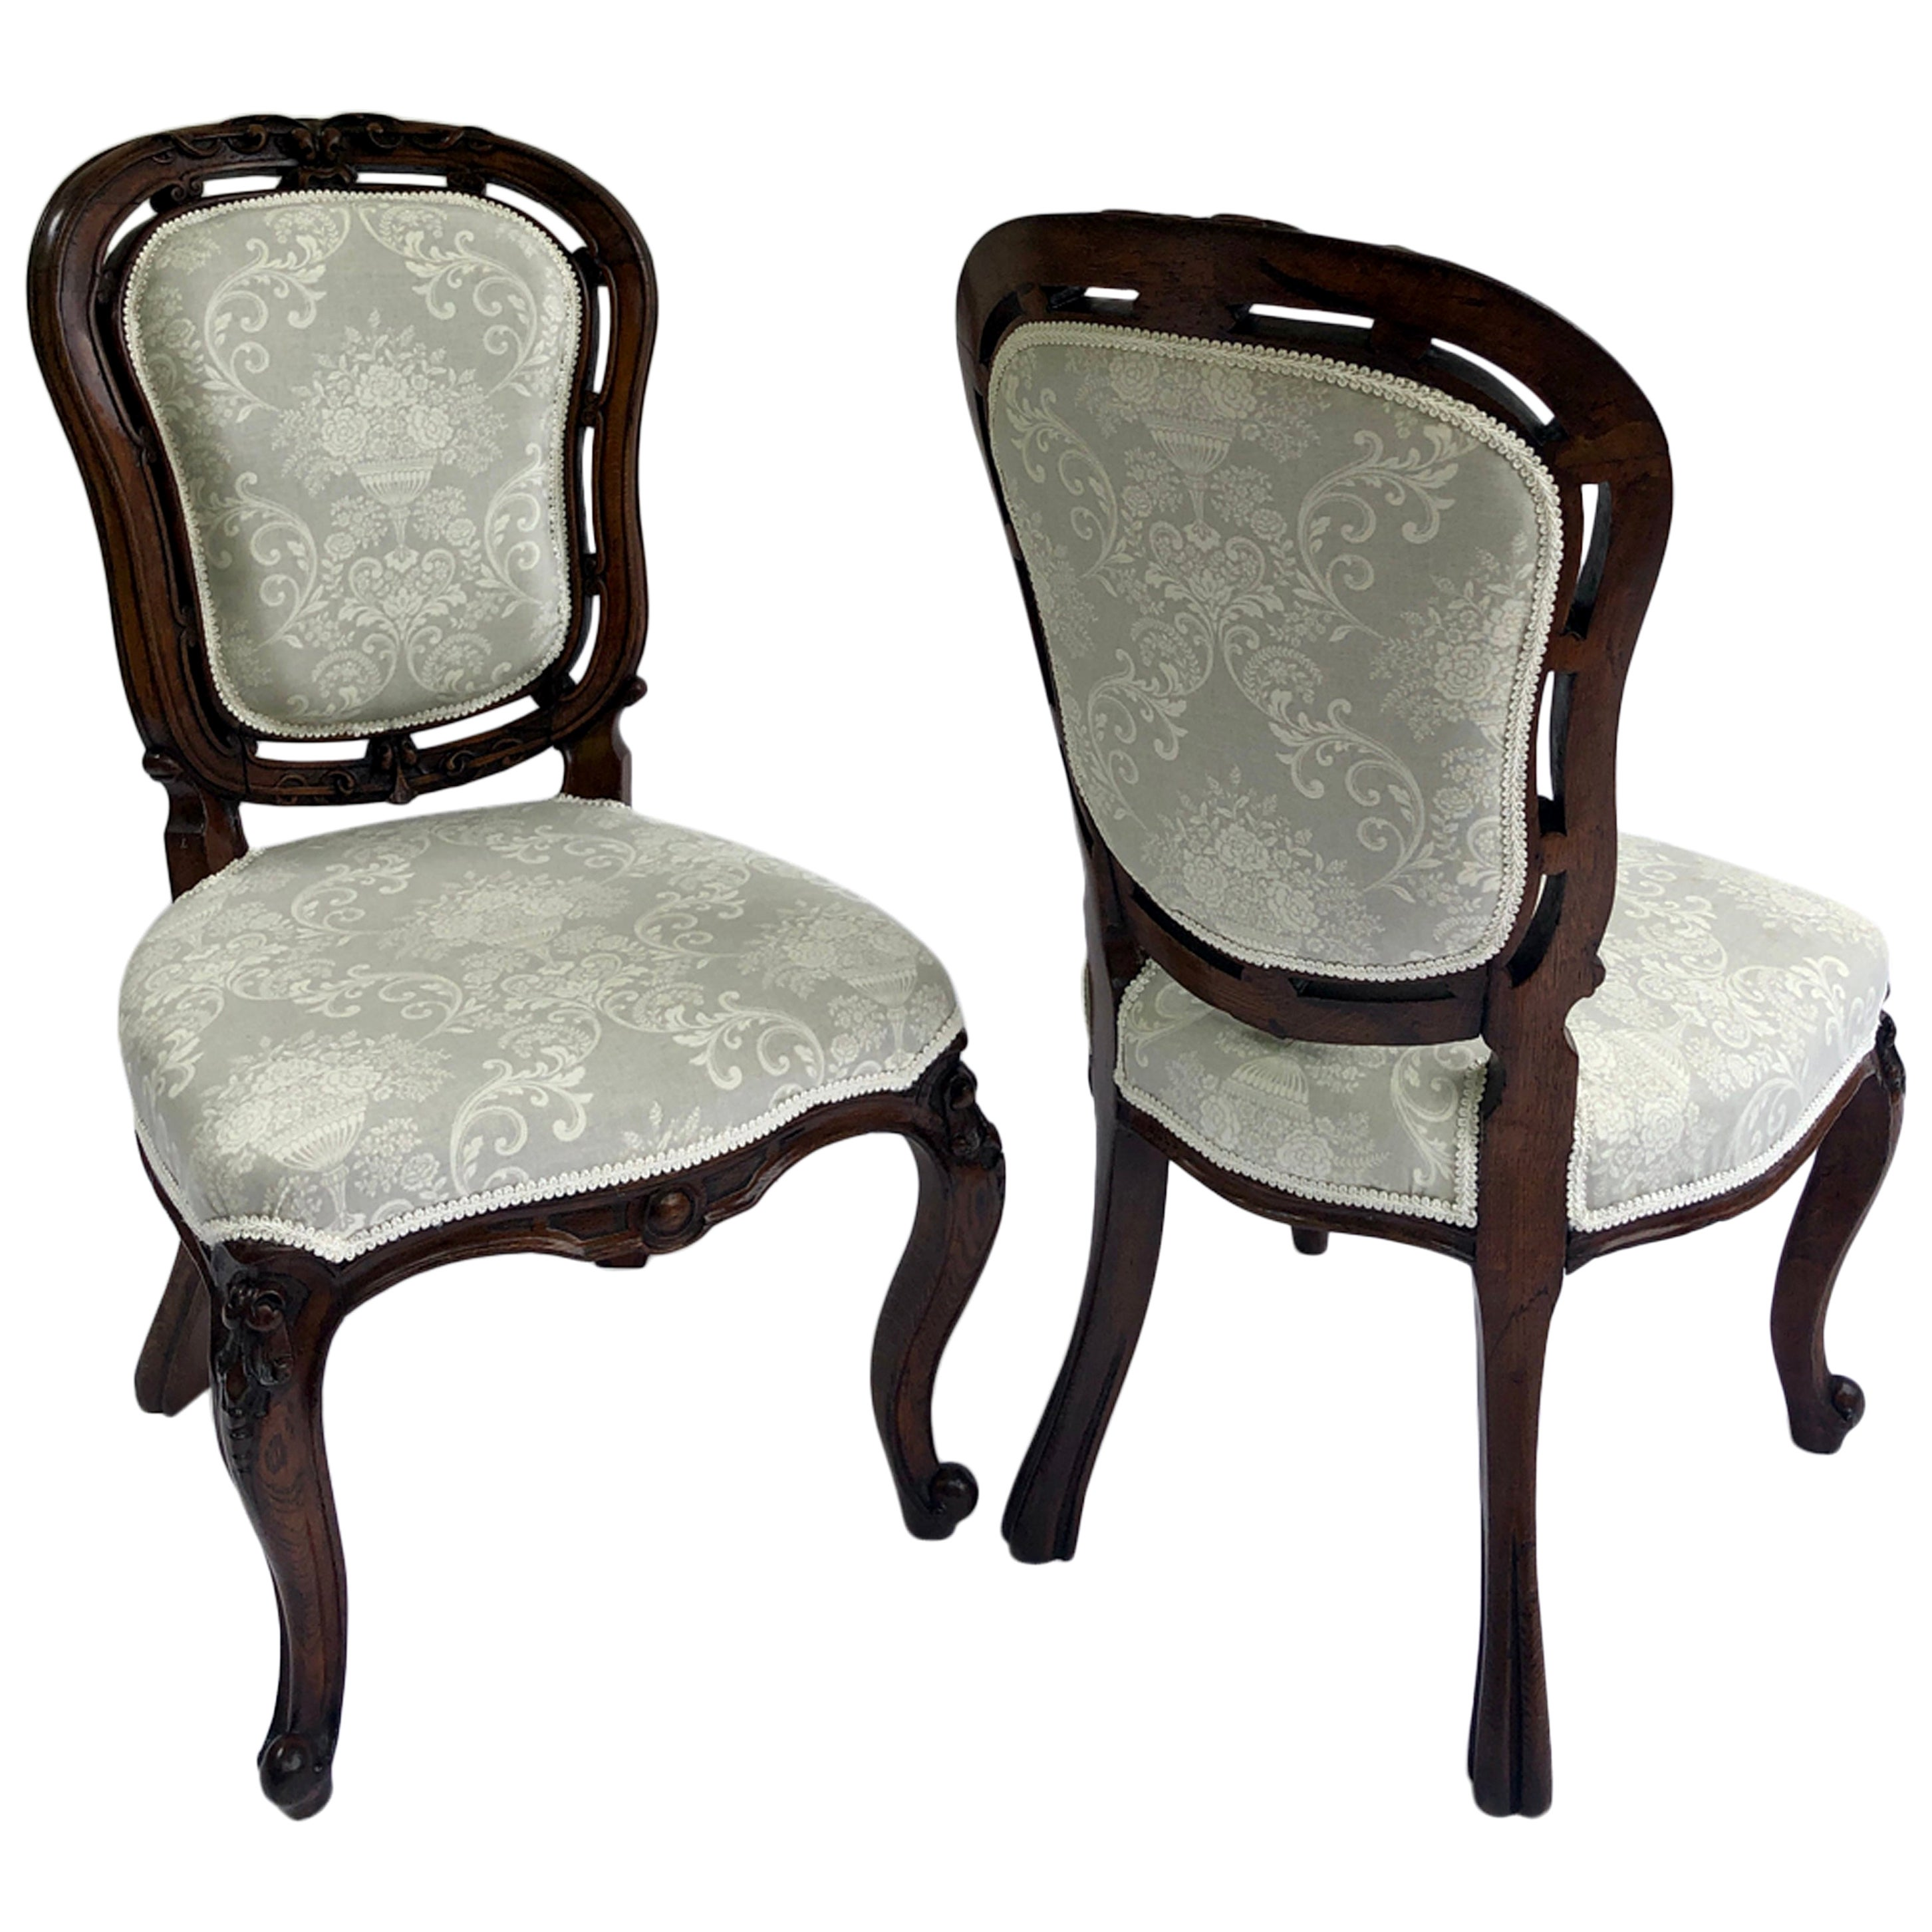 Pair of Quality Victorian Walnut Carved Side/Desk Chairs